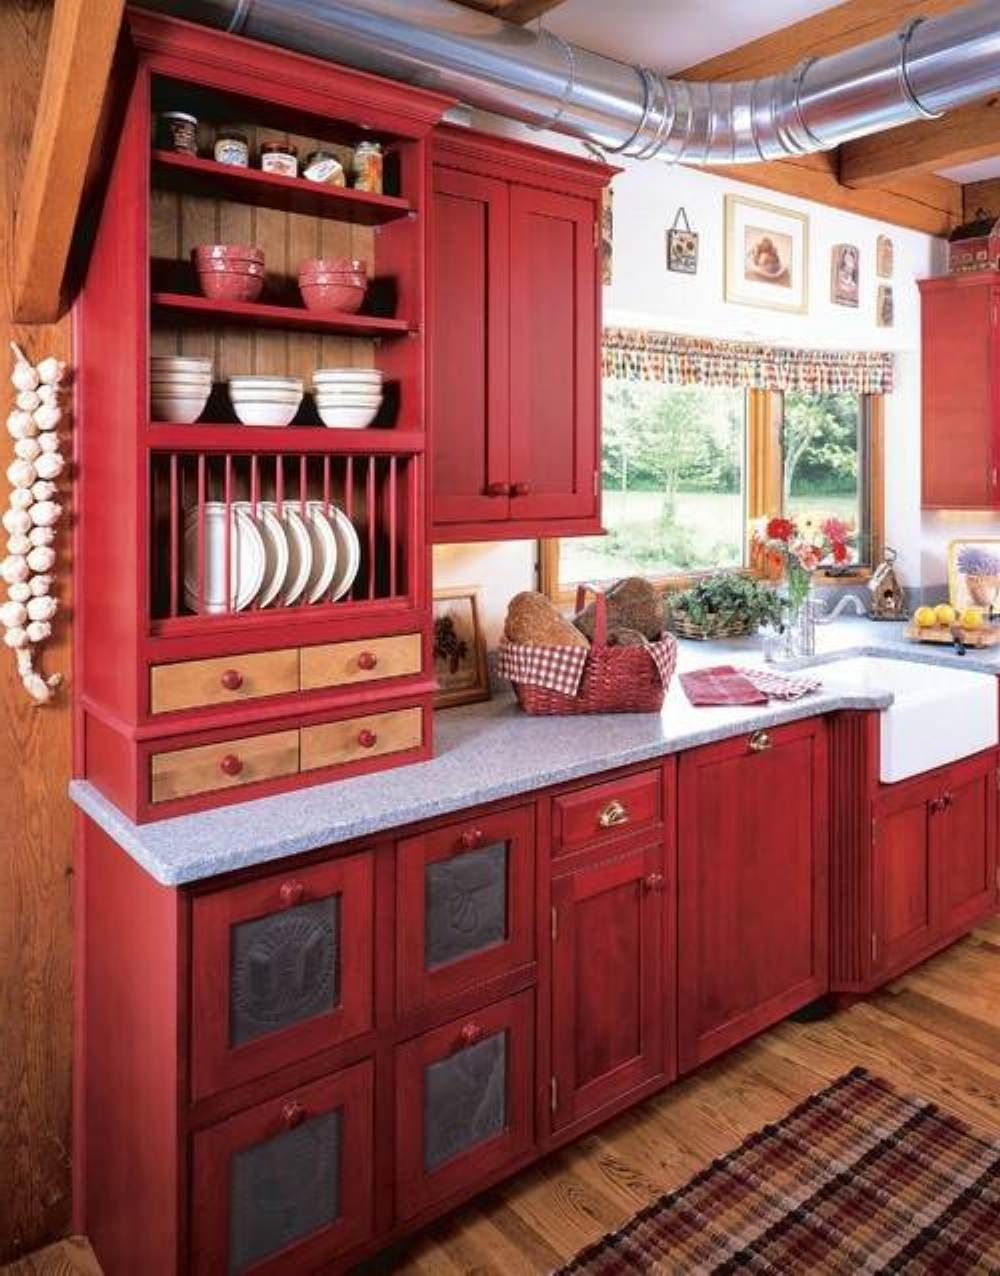 painter for kitchen cabinets the 25 best kitchen cabinets ideas on 4006